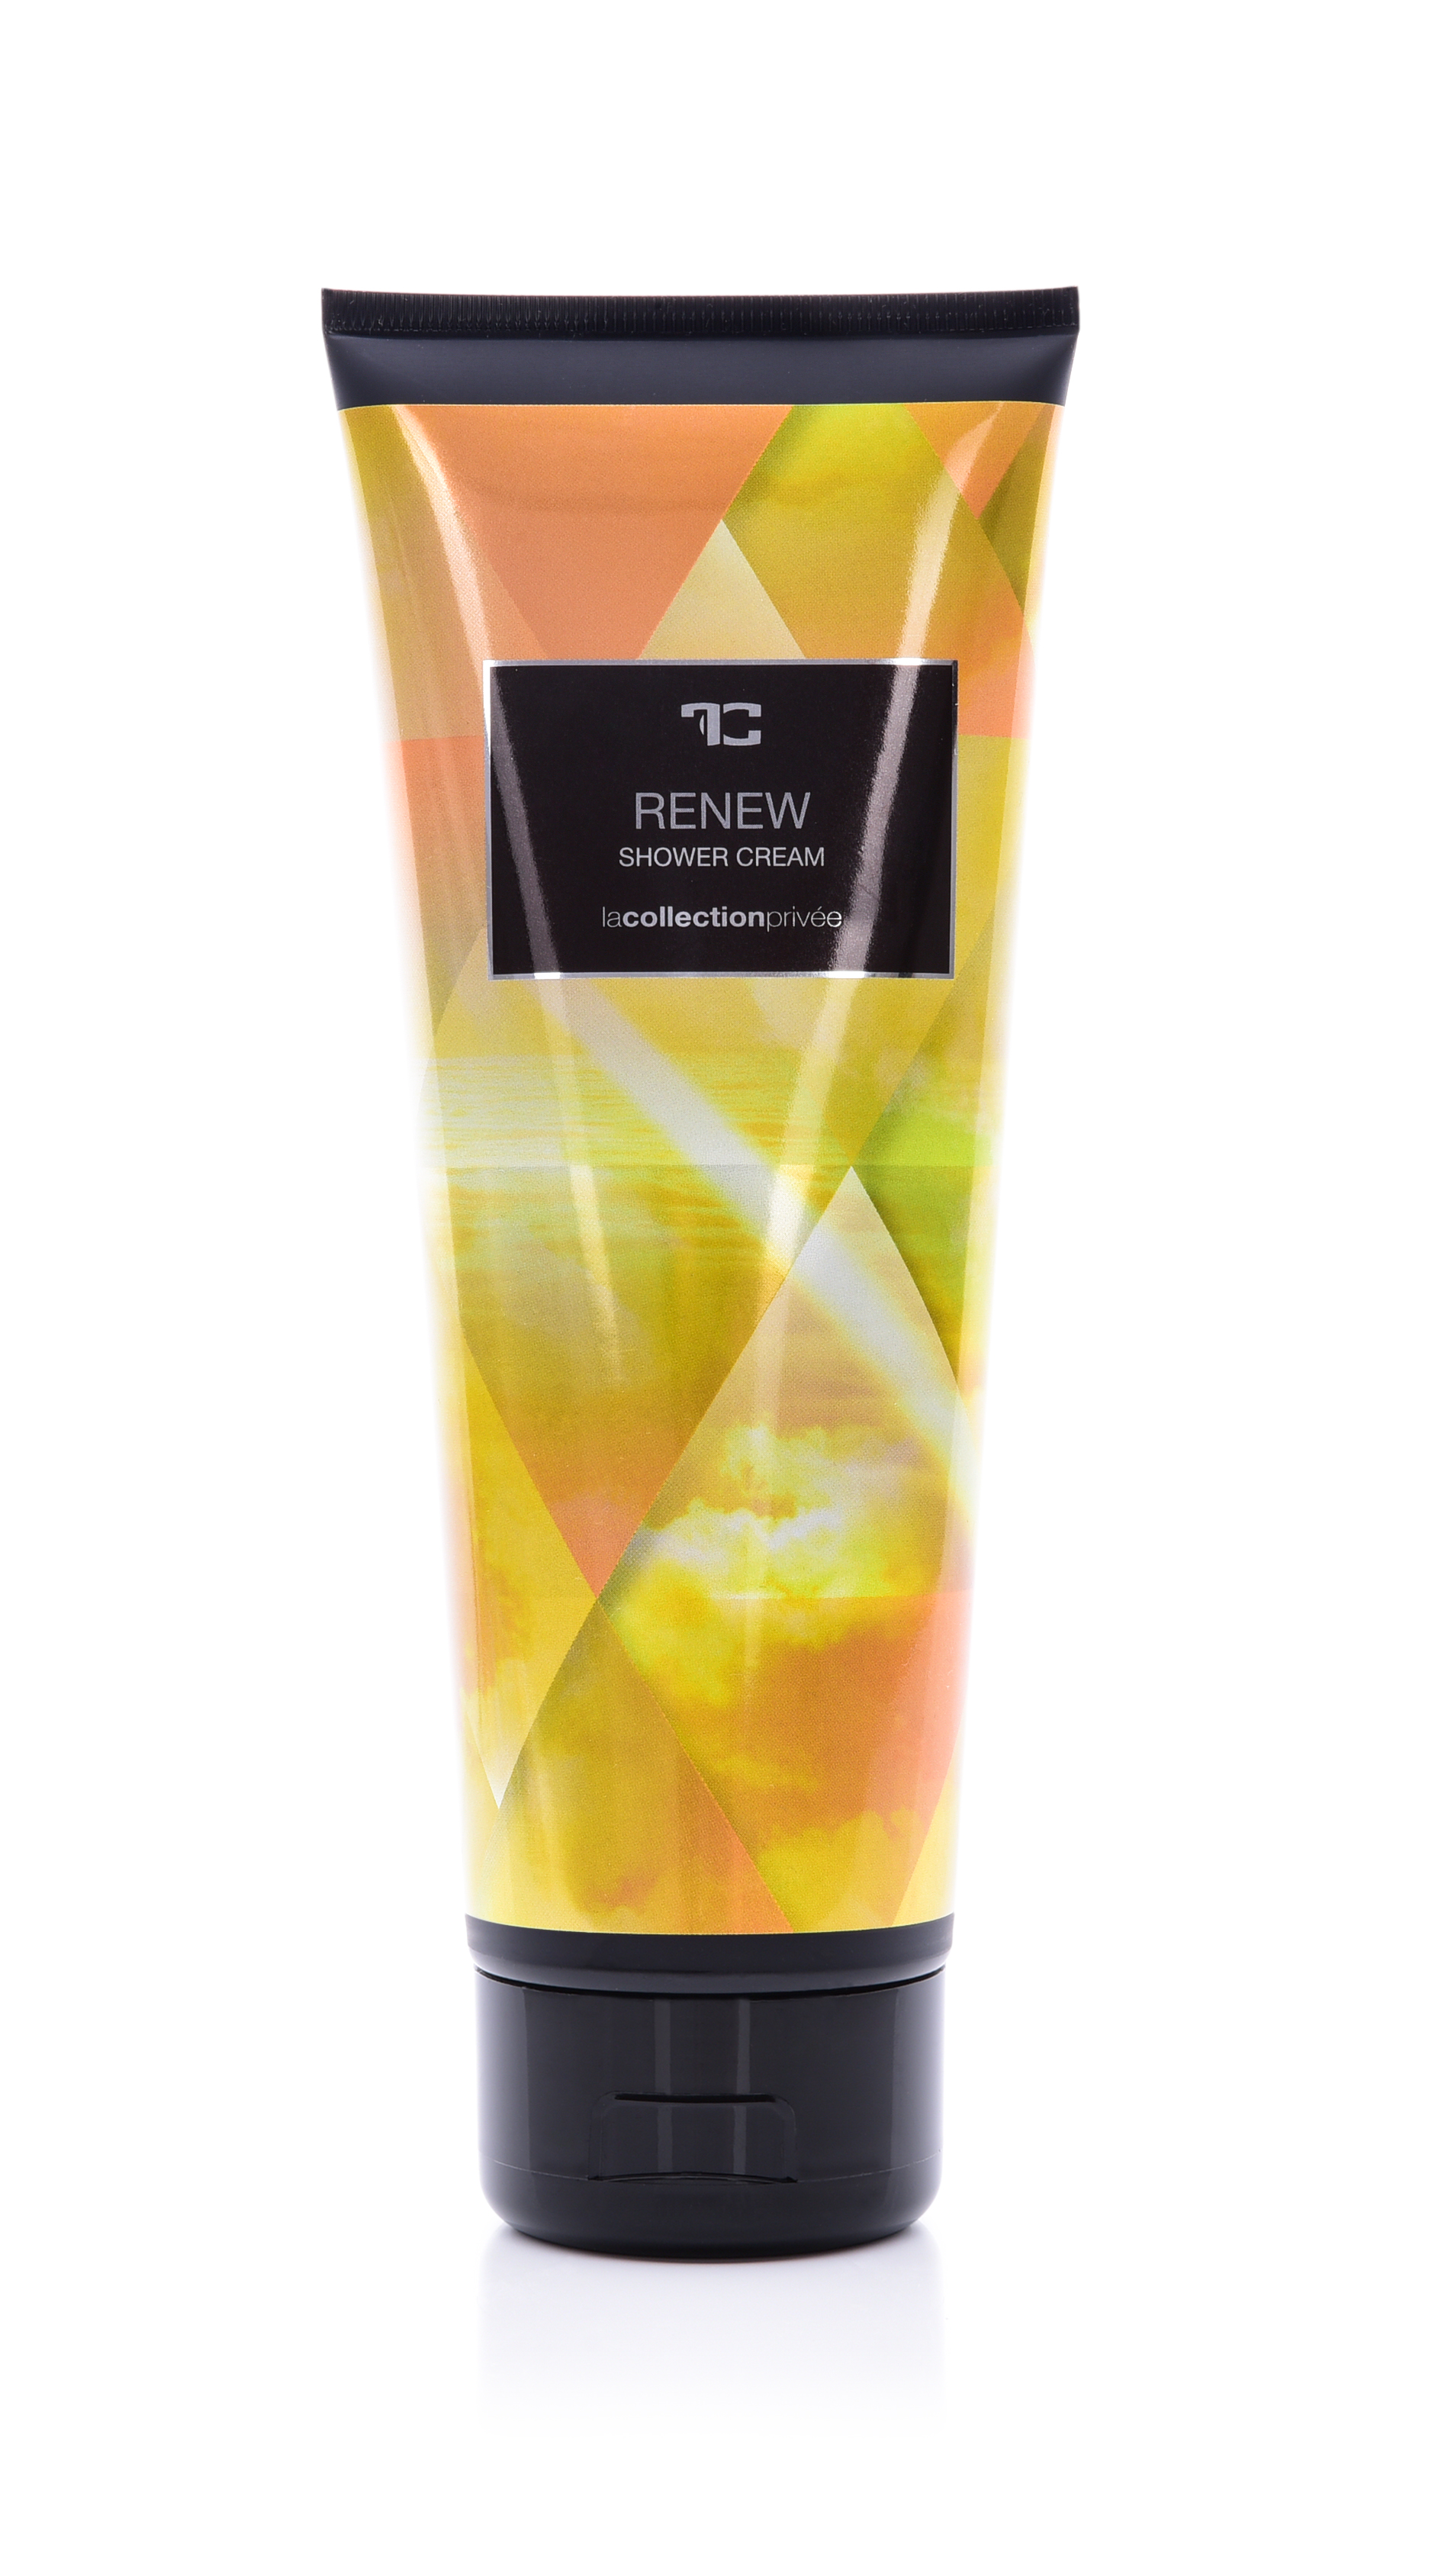 SHOWER CREAM renew, sprchový gel, LA COLLECTION PRIVÉE